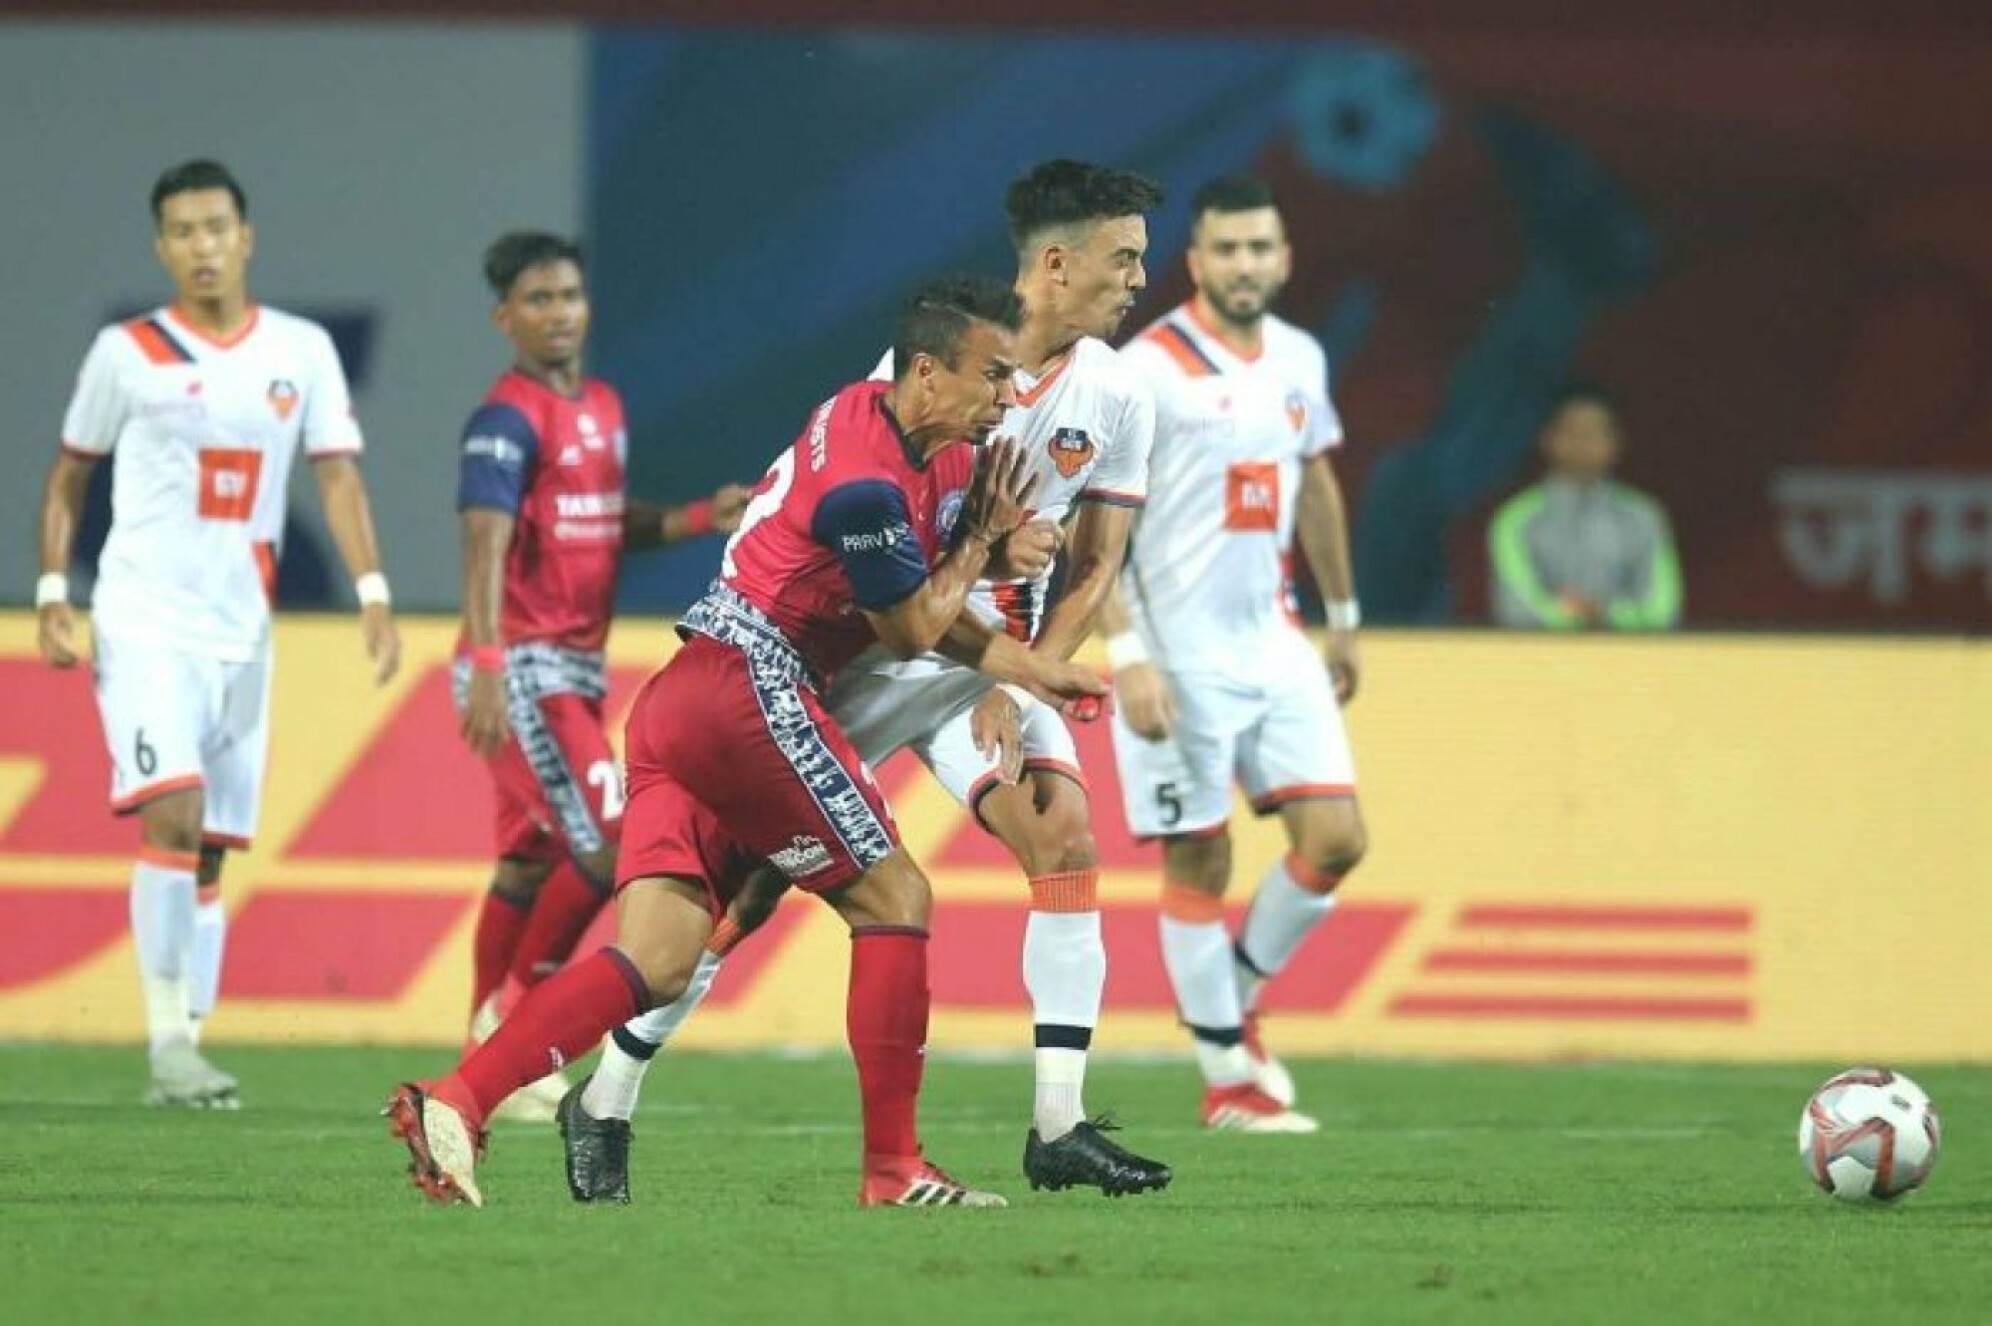 ISL 2018-19: Subrata shines as Jamshedpur salvage a draw against FC Goa